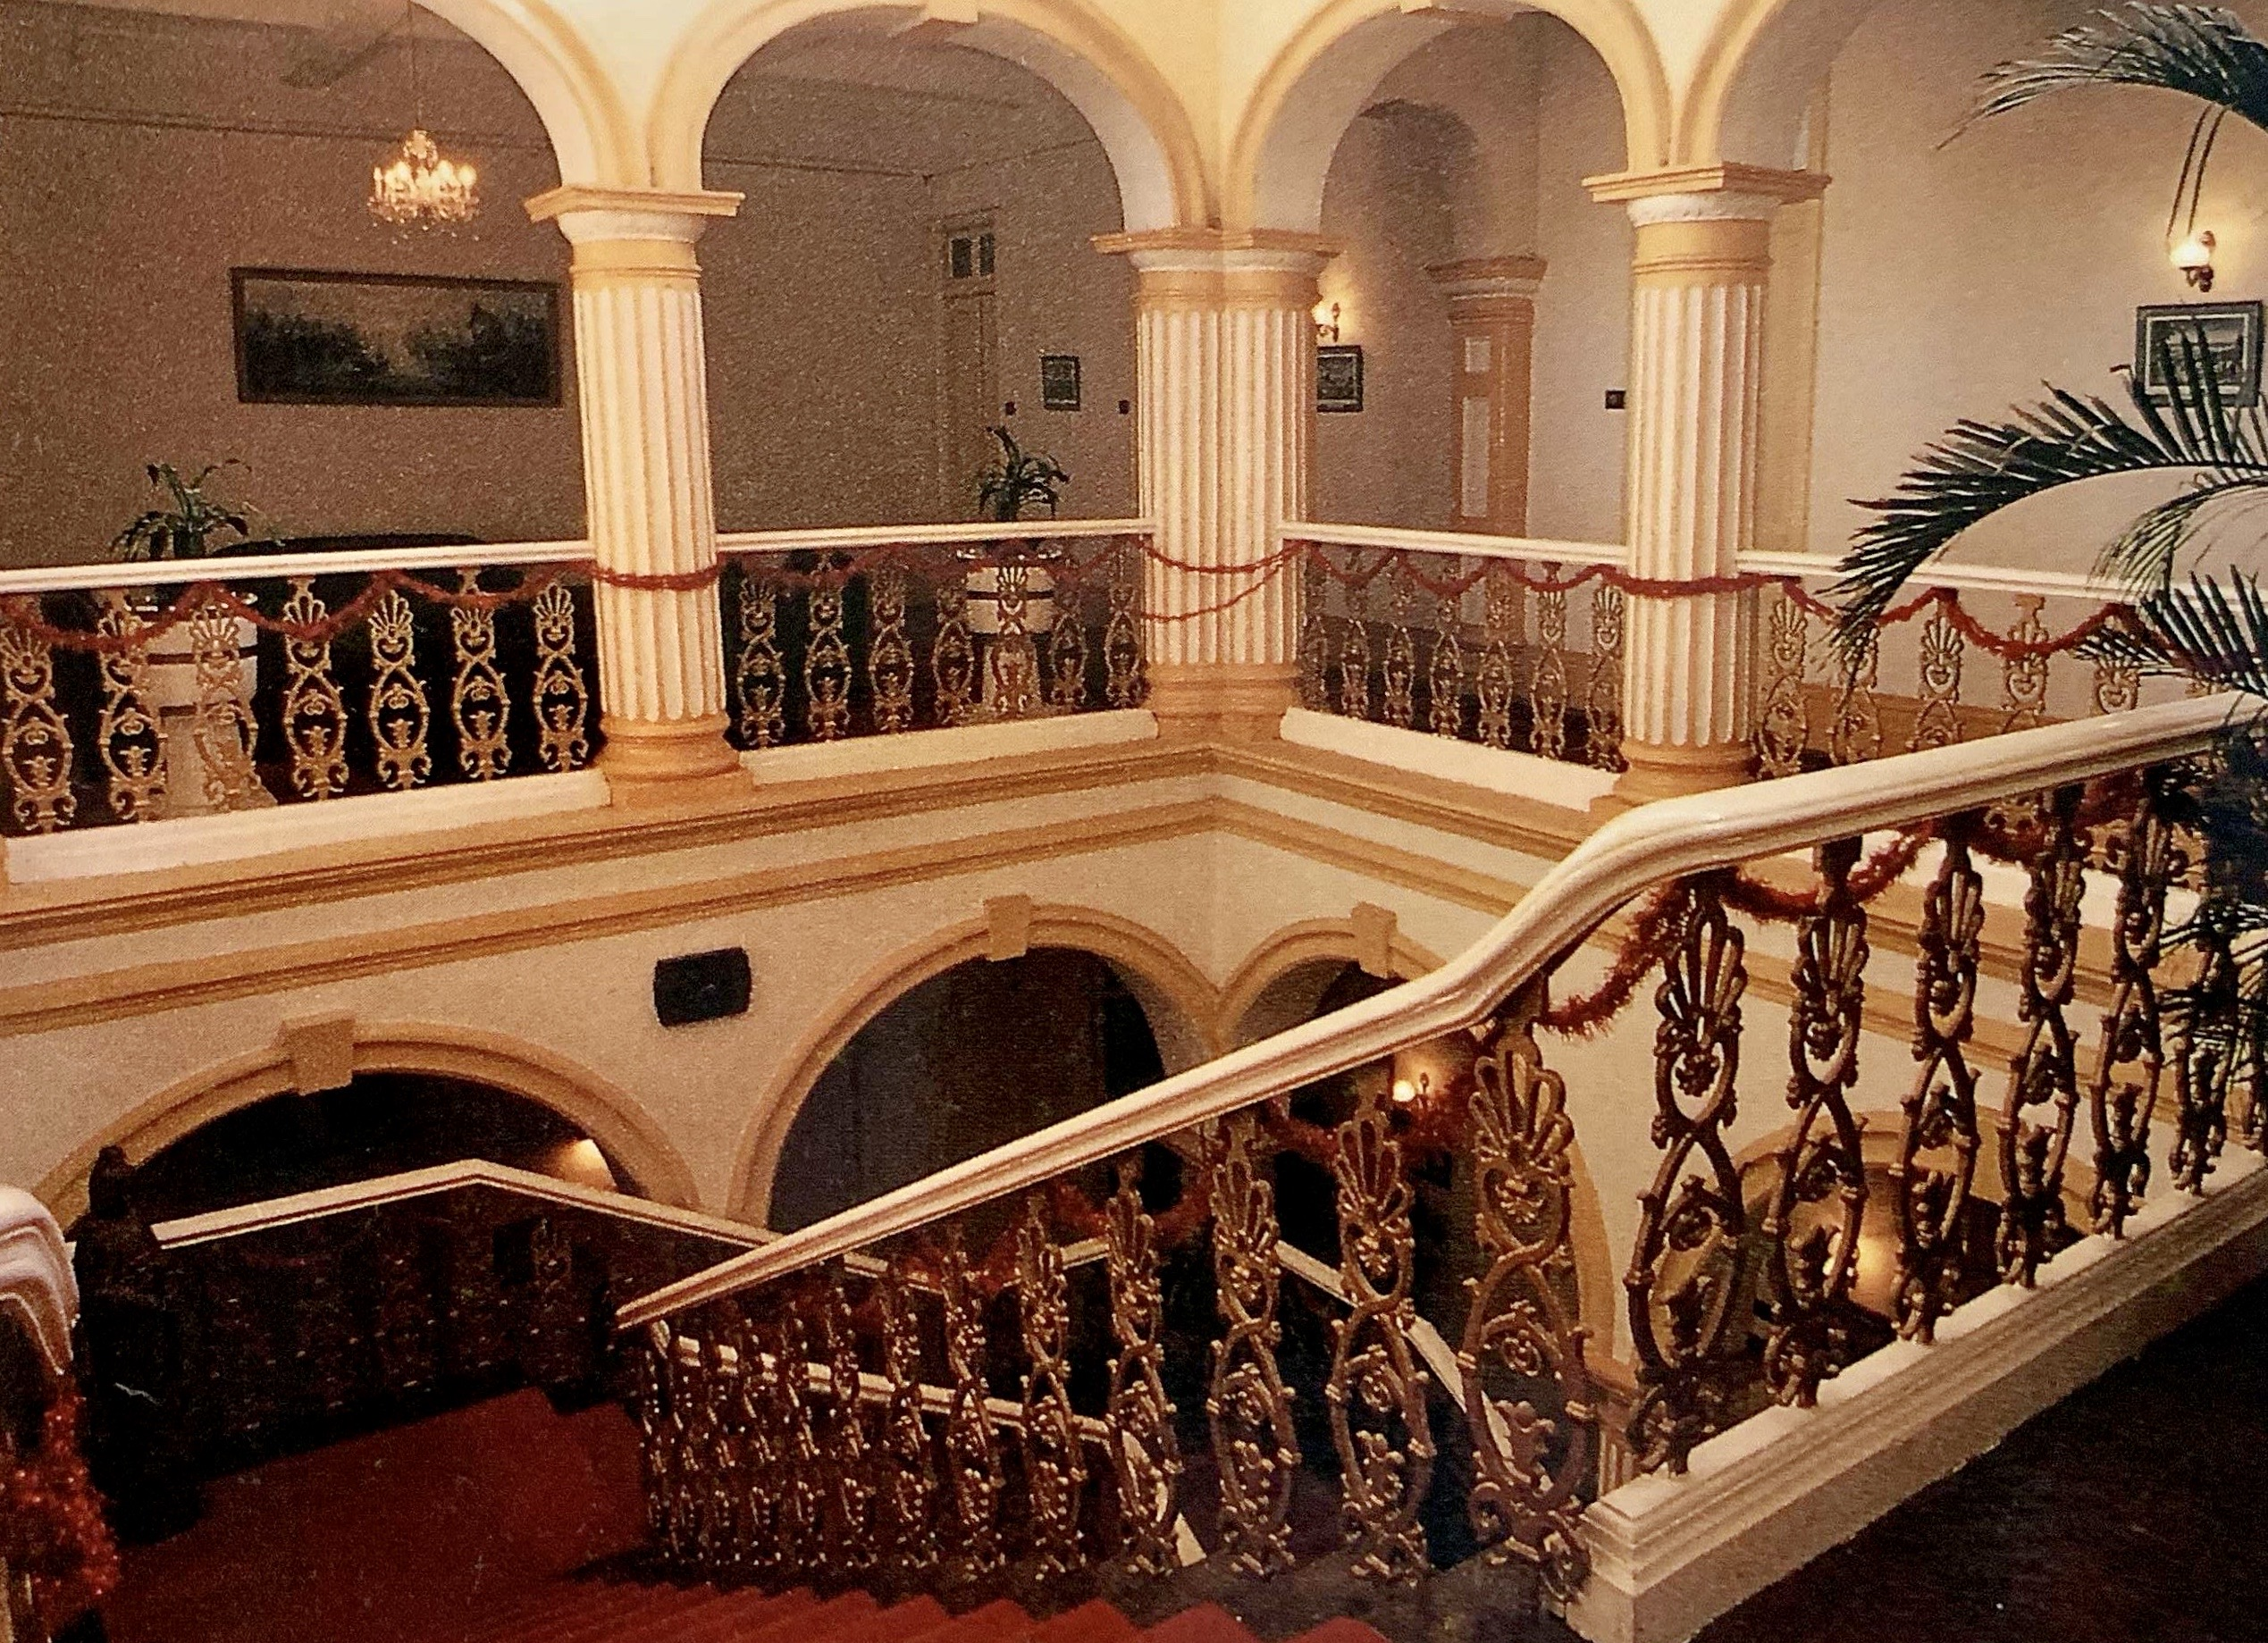 Bela Vista Hotel Interior Staircase Lobby Photo by Eduardo Tome Published by Macao Cultural Institute in 1988